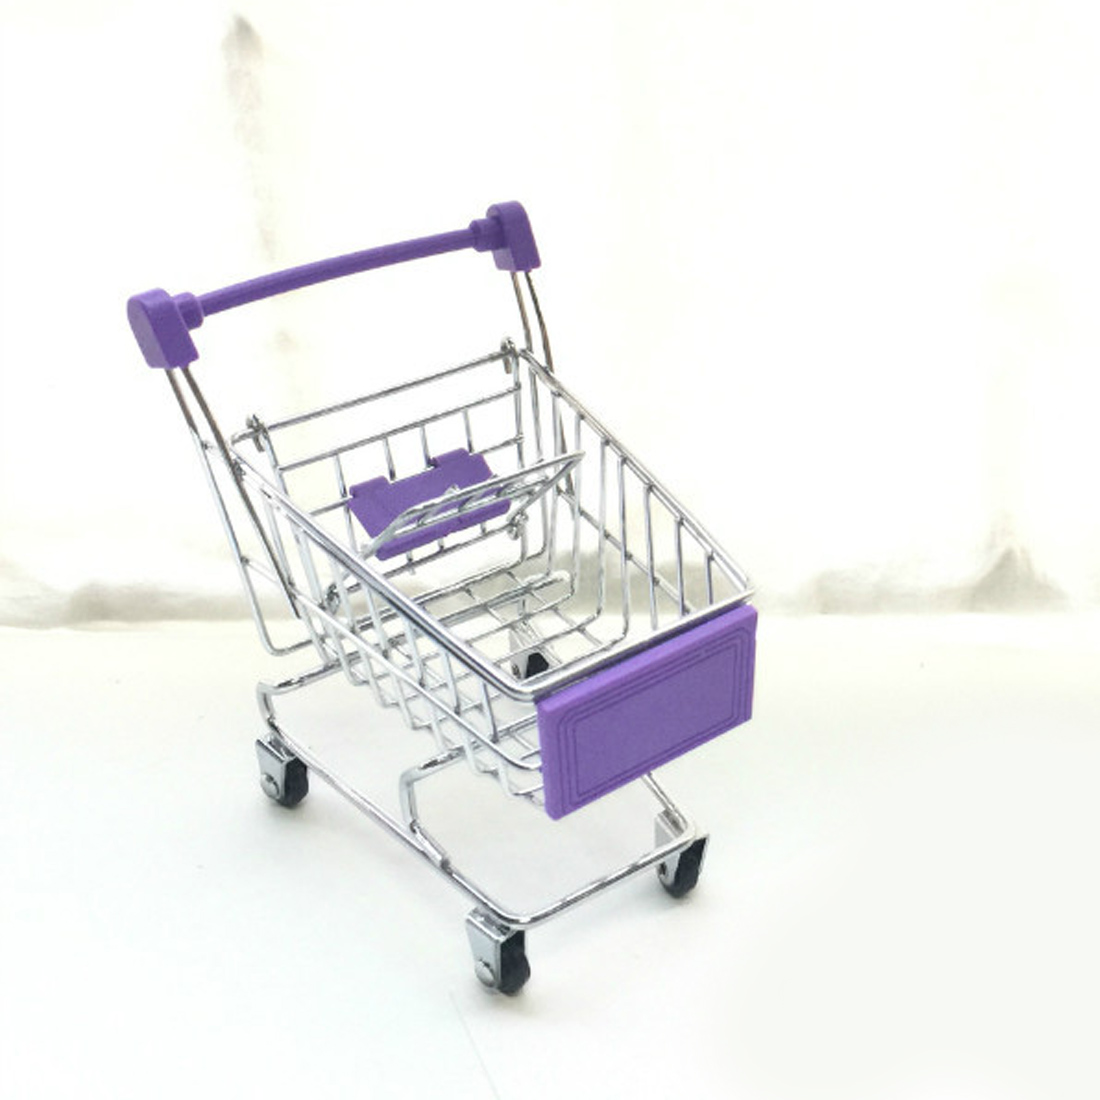 Newest Mini Supermarket Handcart Trolley Shopping Utility Cart Phone Holder Office Desk Storage Toy Cart Baby Toy